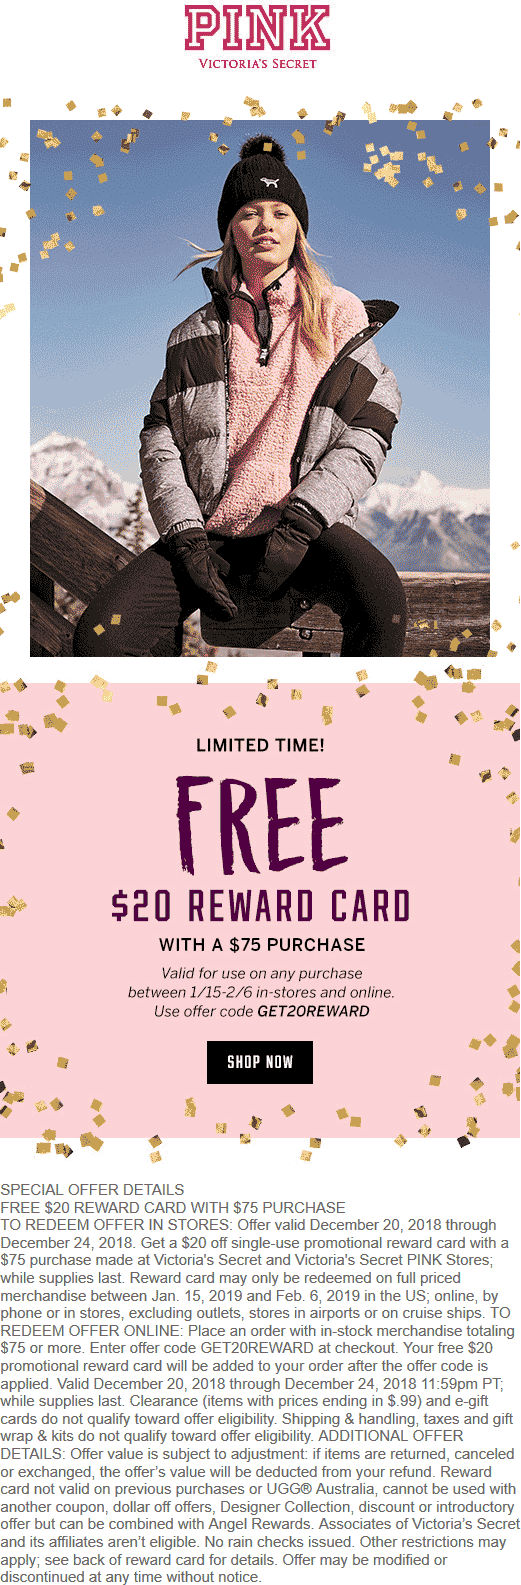 Victorias Secret Coupon May 2019 Free $20 card with $75 spent at Victorias Secret PINK, or online via promo code GET20REWARD